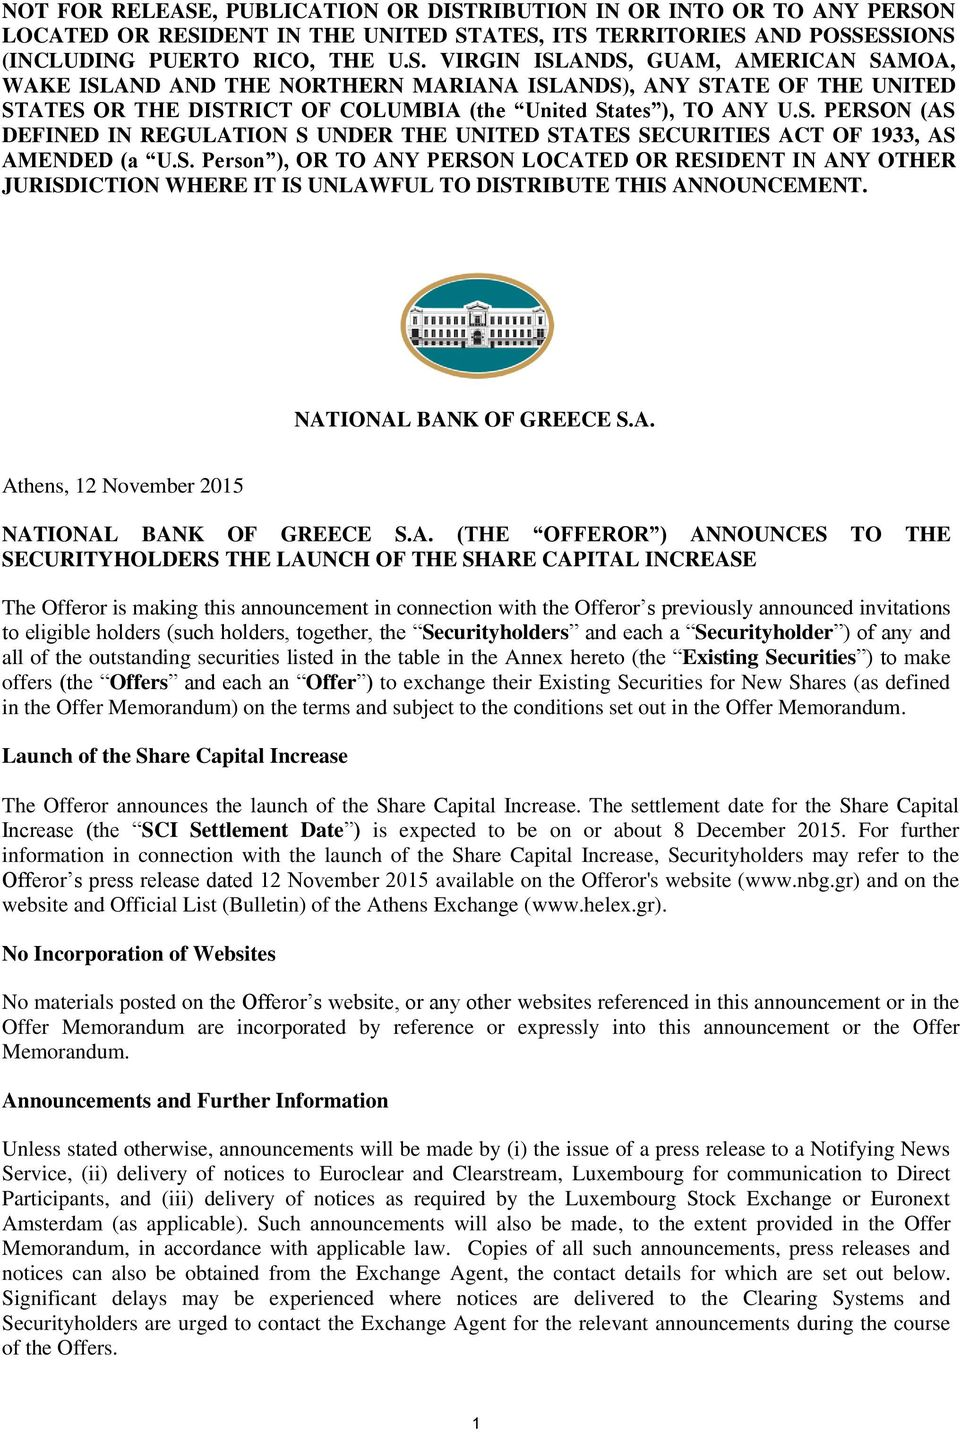 NATIONAL BANK OF GREECE S.A. Athens, 12 November 2015 NATIONAL BANK OF GREECE S.A. (THE OFFEROR ) ANNOUNCES TO THE SECURITYHOLDERS THE LAUNCH OF THE SHARE CAPITAL INCREASE The Offeror is making this